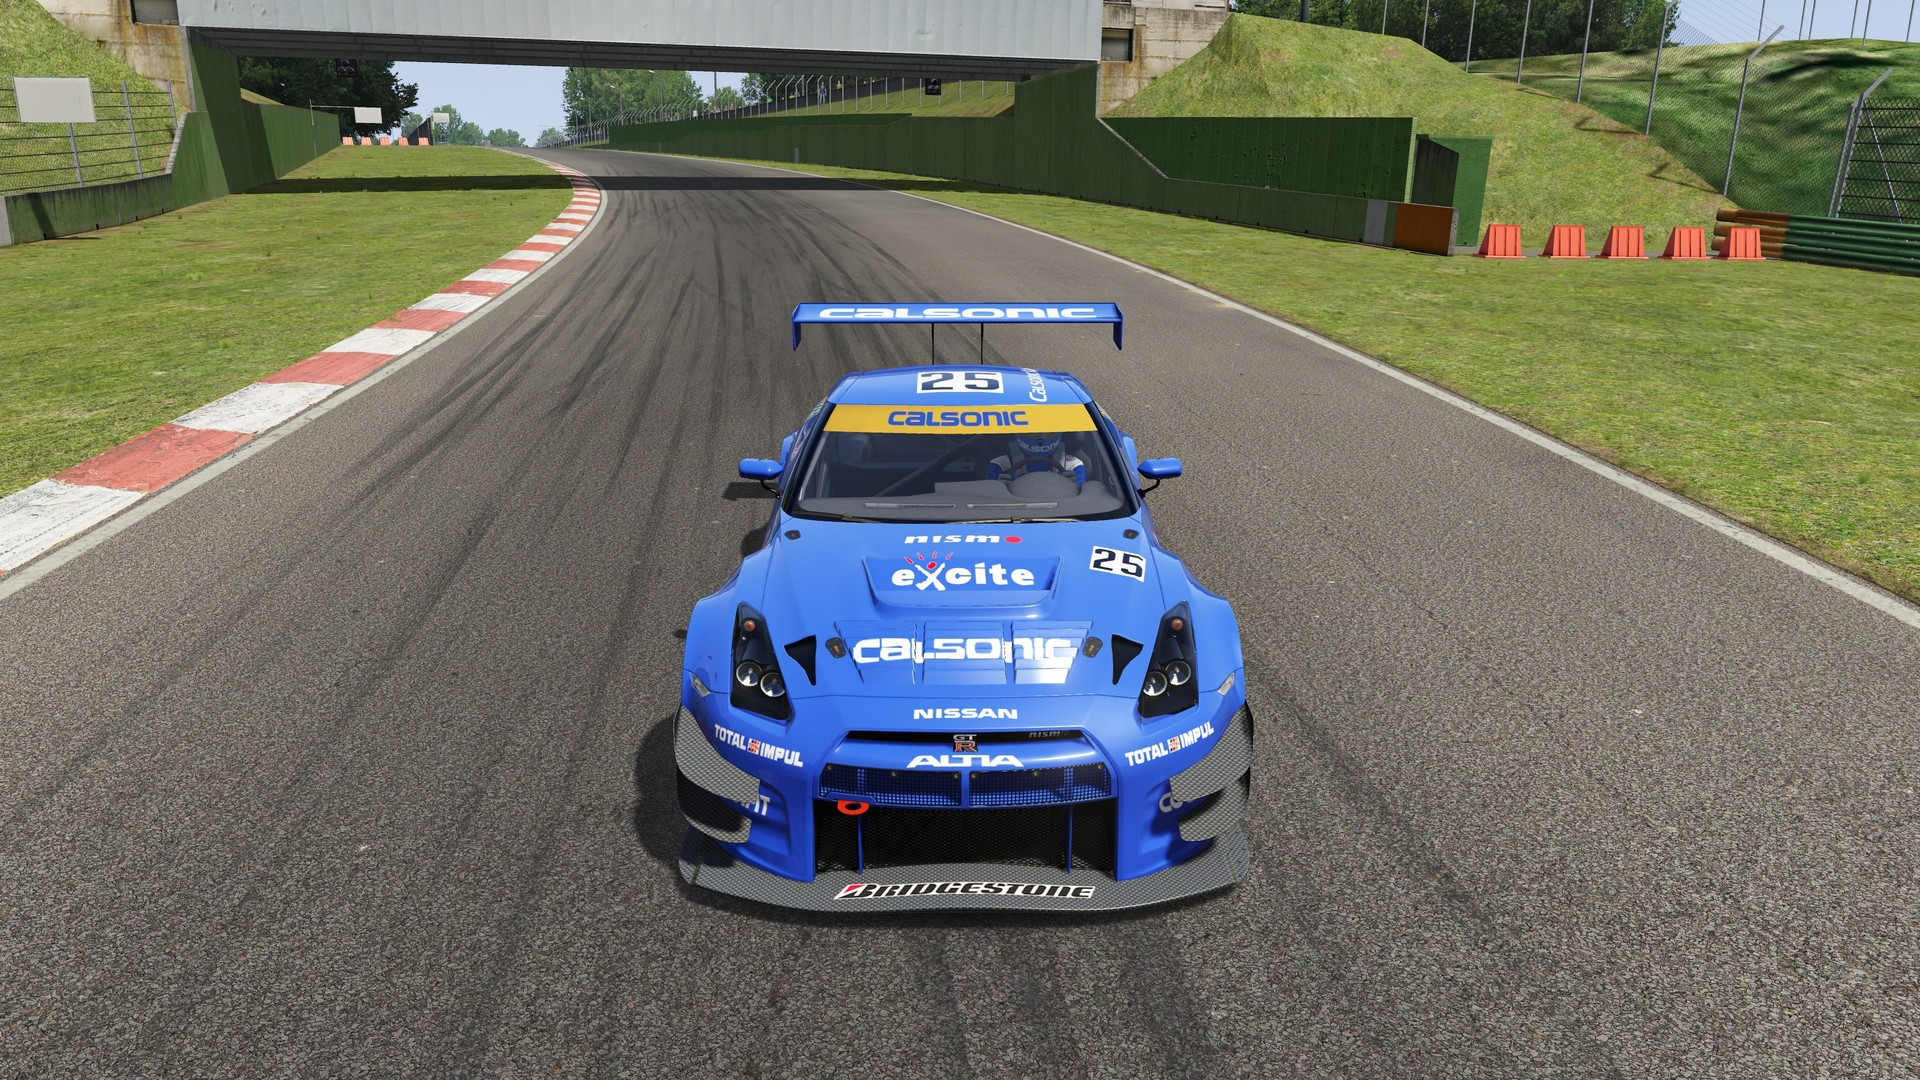 Screenshot_ks_nissan_gtr_gt3_imola_24-10-116-15-35-20.jpg